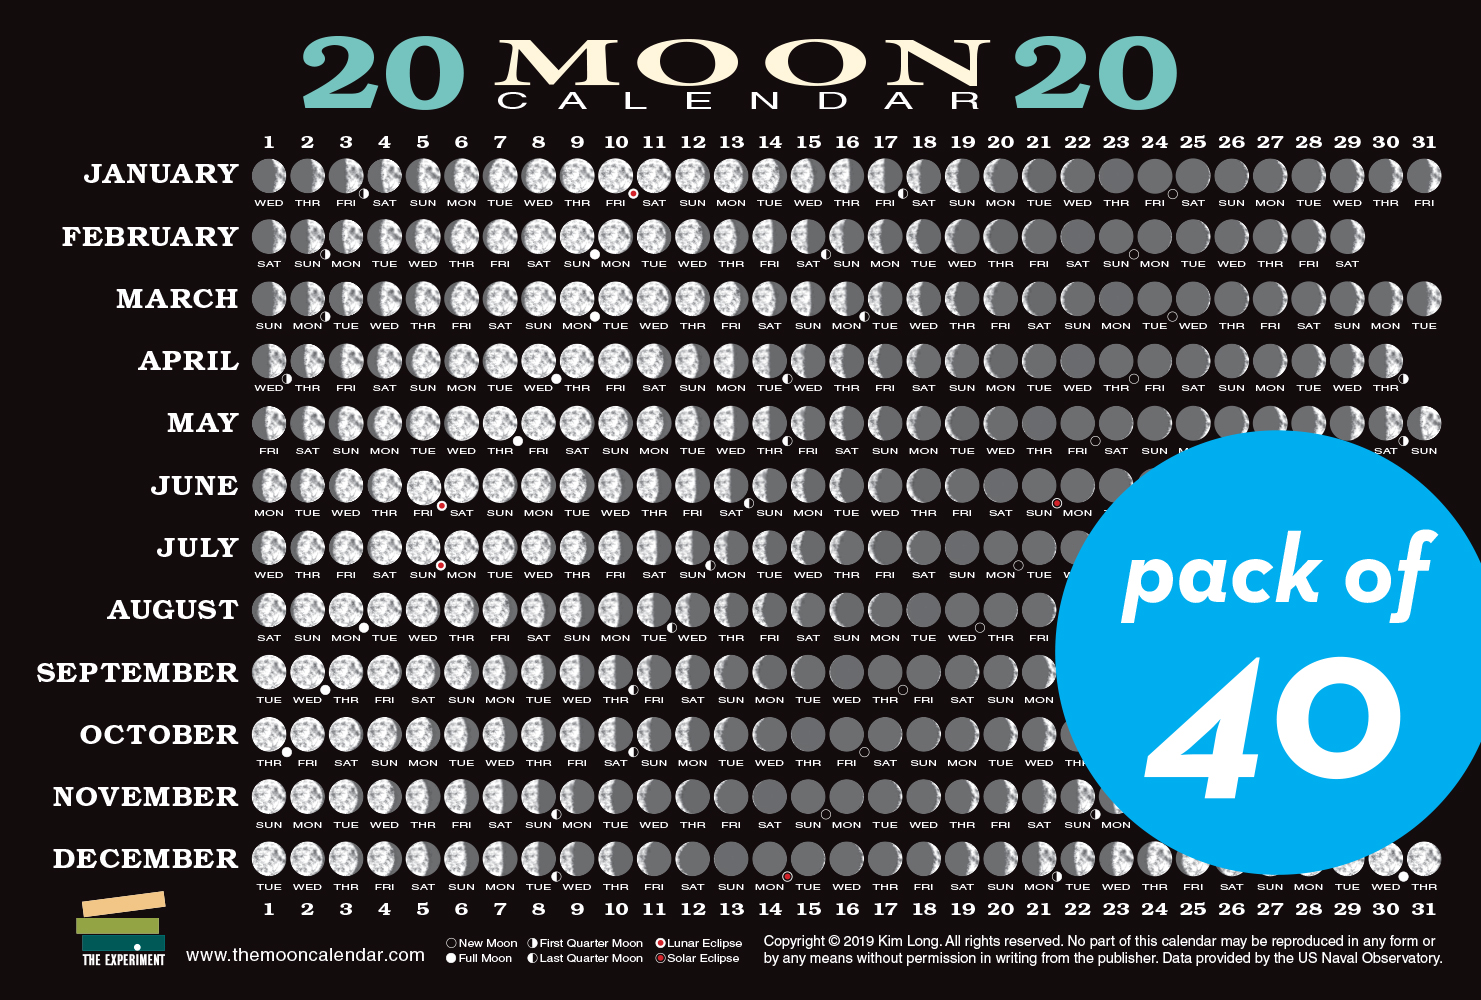 Lunar Calendar For 2020 2020 Moon Calendar Card (40 pack)   Workman Publishing